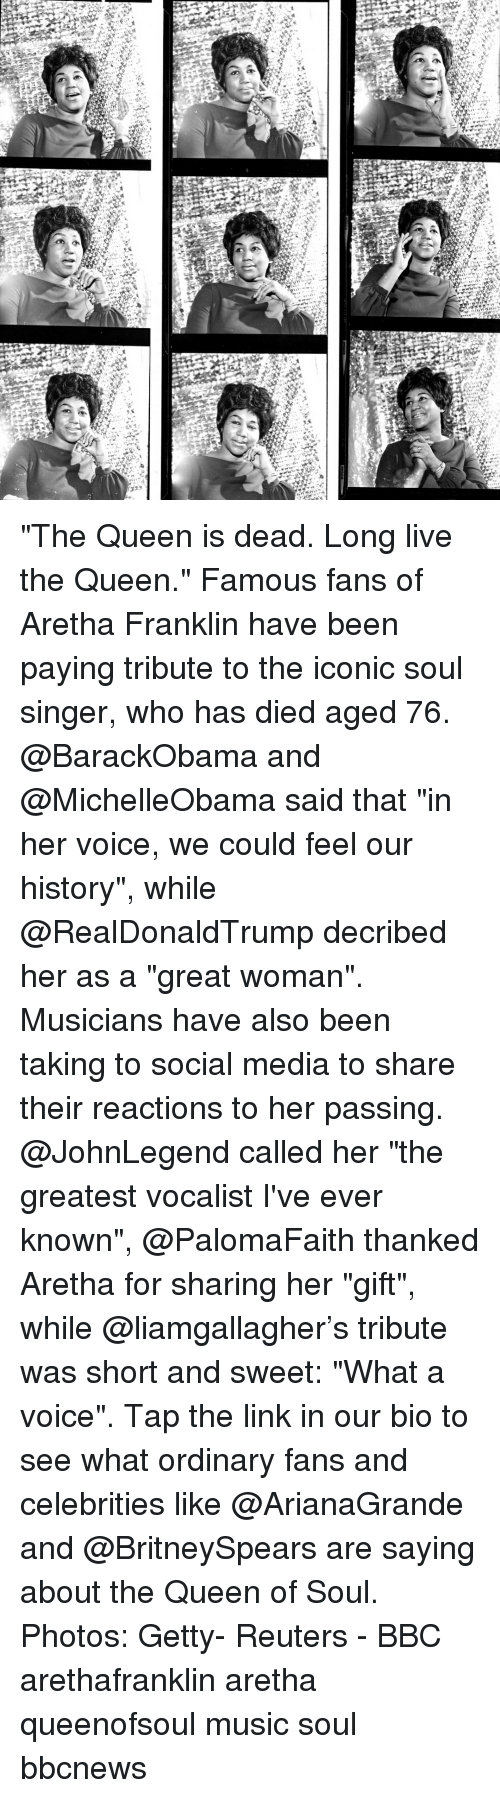 """Memes, Music, and Social Media: """"The Queen is dead. Long live the Queen."""" Famous fans of Aretha Franklin have been paying tribute to the iconic soul singer, who has died aged 76. @BarackObama and @MichelleObama said that """"in her voice, we could feel our history"""", while @RealDonaldTrump decribed her as a """"great woman"""". Musicians have also been taking to social media to share their reactions to her passing. @JohnLegend called her """"the greatest vocalist I've ever known"""", @PalomaFaith thanked Aretha for sharing her """"gift"""", while @liamgallagher's tribute was short and sweet: """"What a voice"""". Tap the link in our bio to see what ordinary fans and celebrities like @ArianaGrande and @BritneySpears are saying about the Queen of Soul. Photos: Getty- Reuters - BBC arethafranklin aretha queenofsoul music soul bbcnews"""